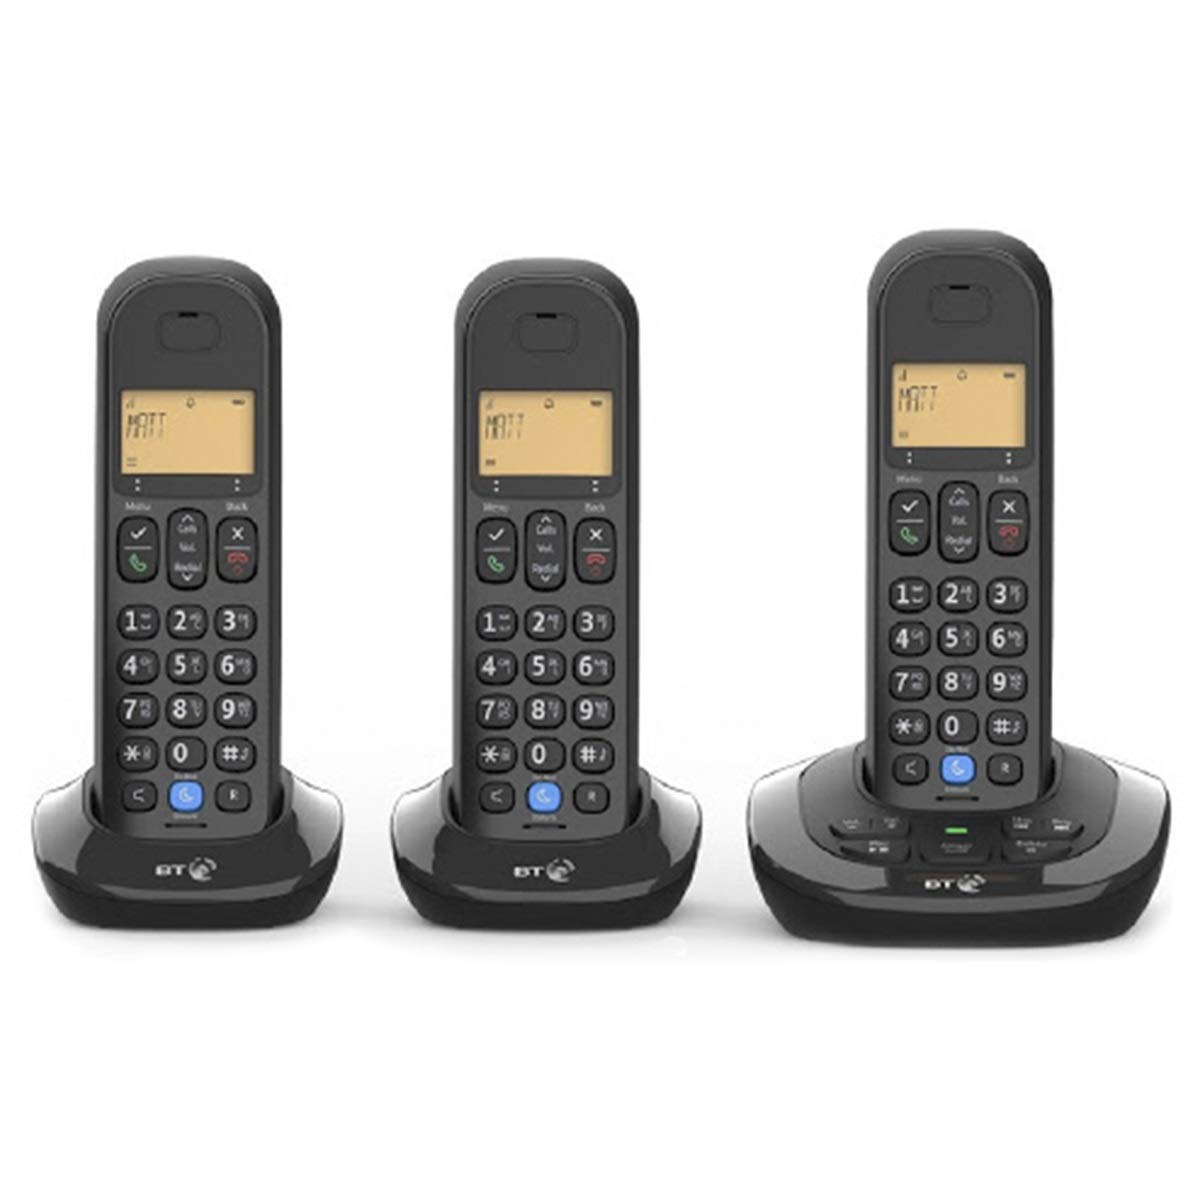 Certified Refurbished BT 3880 Trio Digital Cordless Answerphone with Nuisance Call Blocker